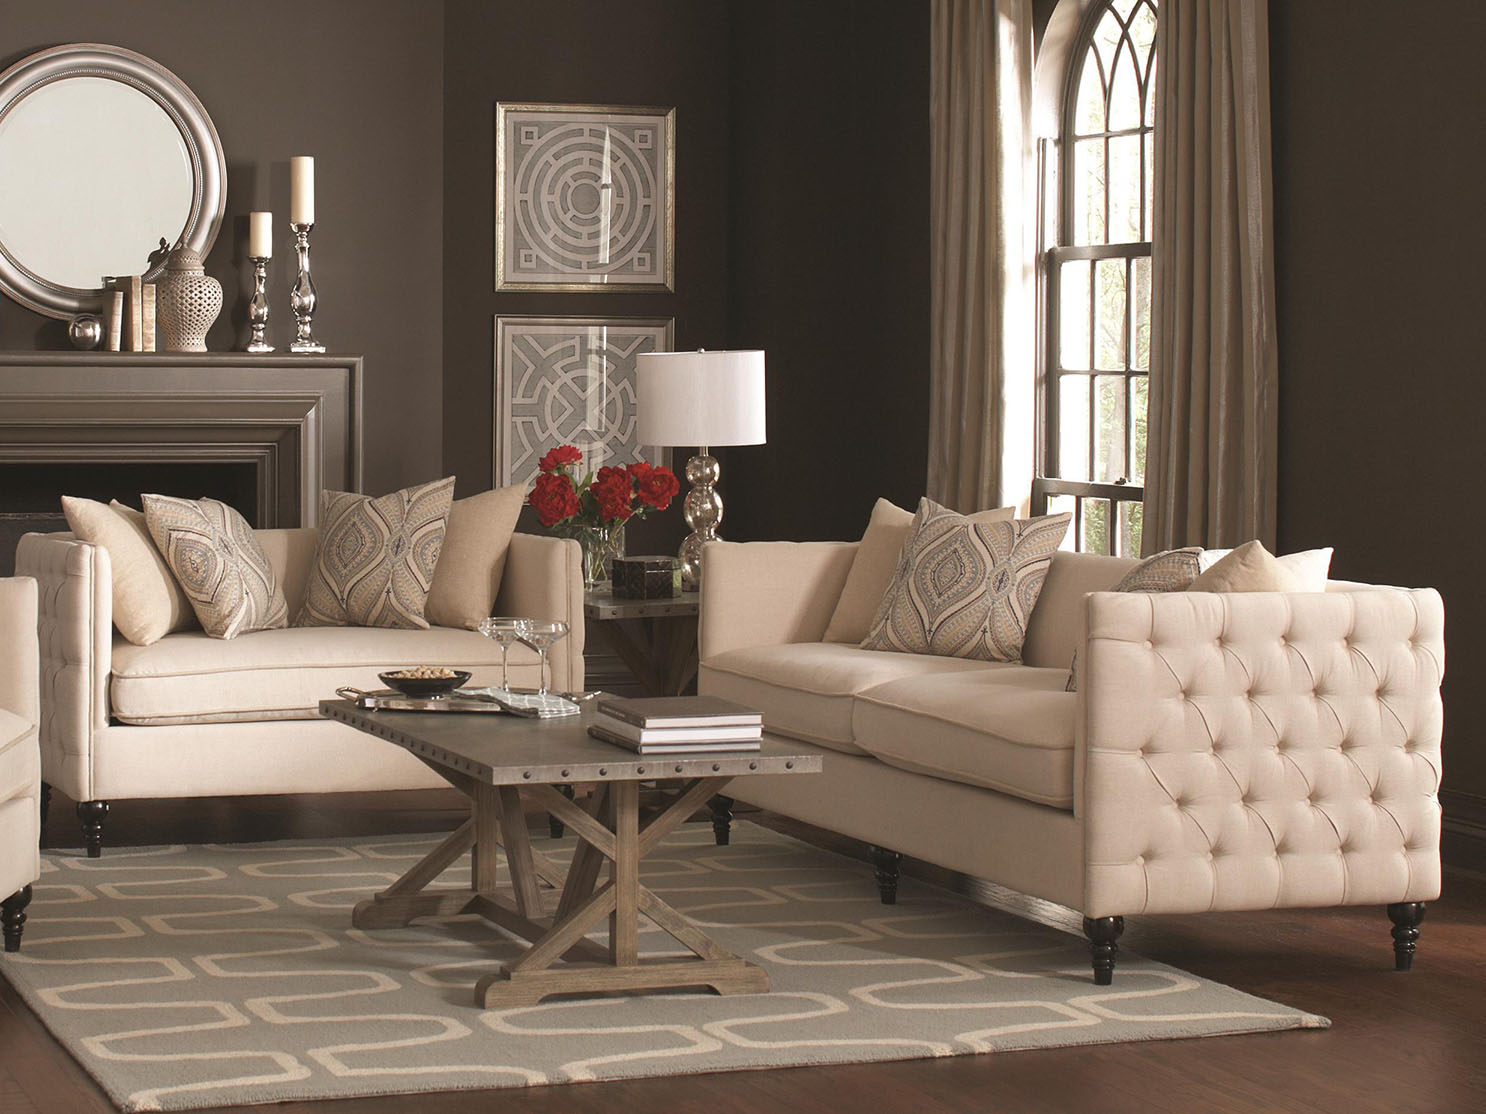 Rana Furniture Living Room Chairs